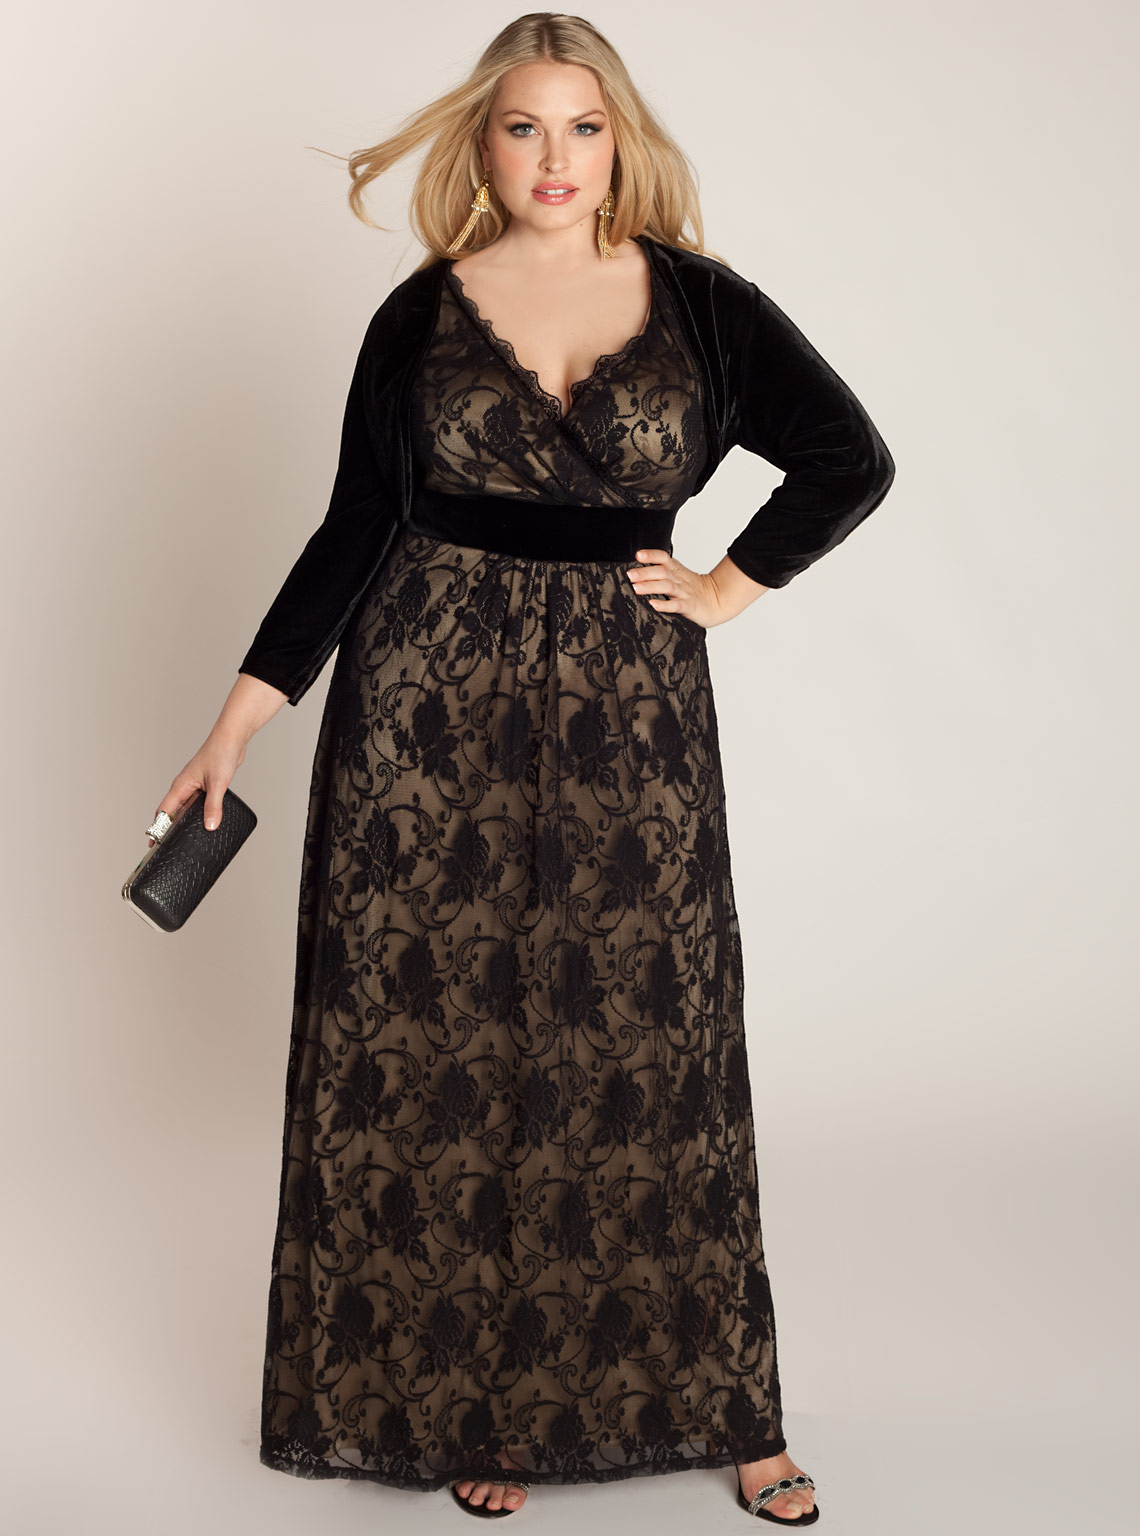 This drop-waist dress comes in size 1/2X, which fits like a 16/18 for a perfectly flattering appeal. It features a champagne colored underlay and black lace overlay on the bodice, while the skirt portion has two layers of black fringe.